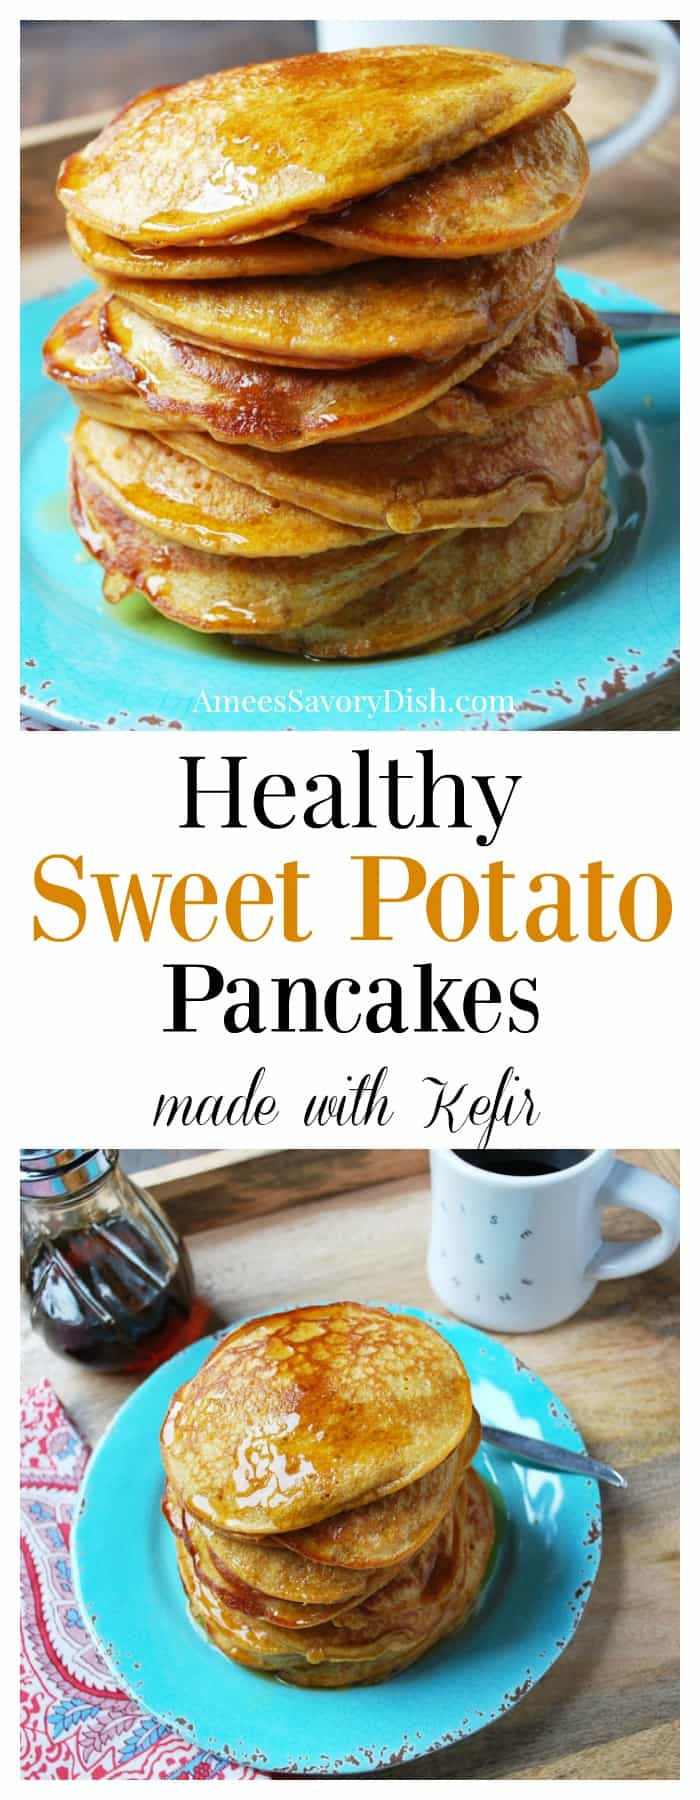 My kids always vote for pancakes for breakfast!  I love this sweet potato pancakes recipe.  It's healthy, tasty and very simple to make.  via @Ameessavorydish